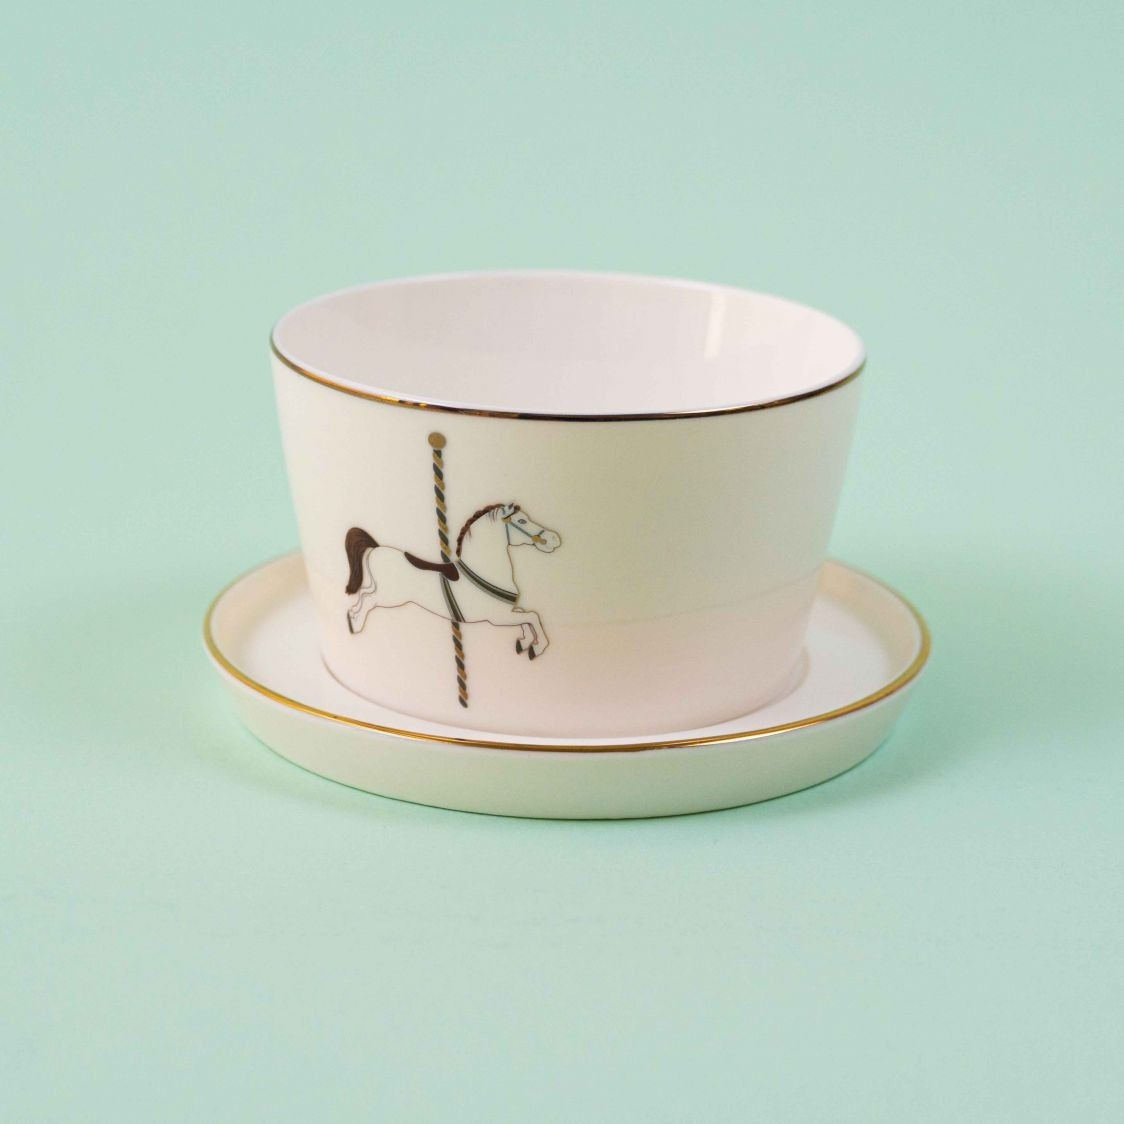 BOWL MEGHLE WITH SAUCER CAROUSEL - SINGLE